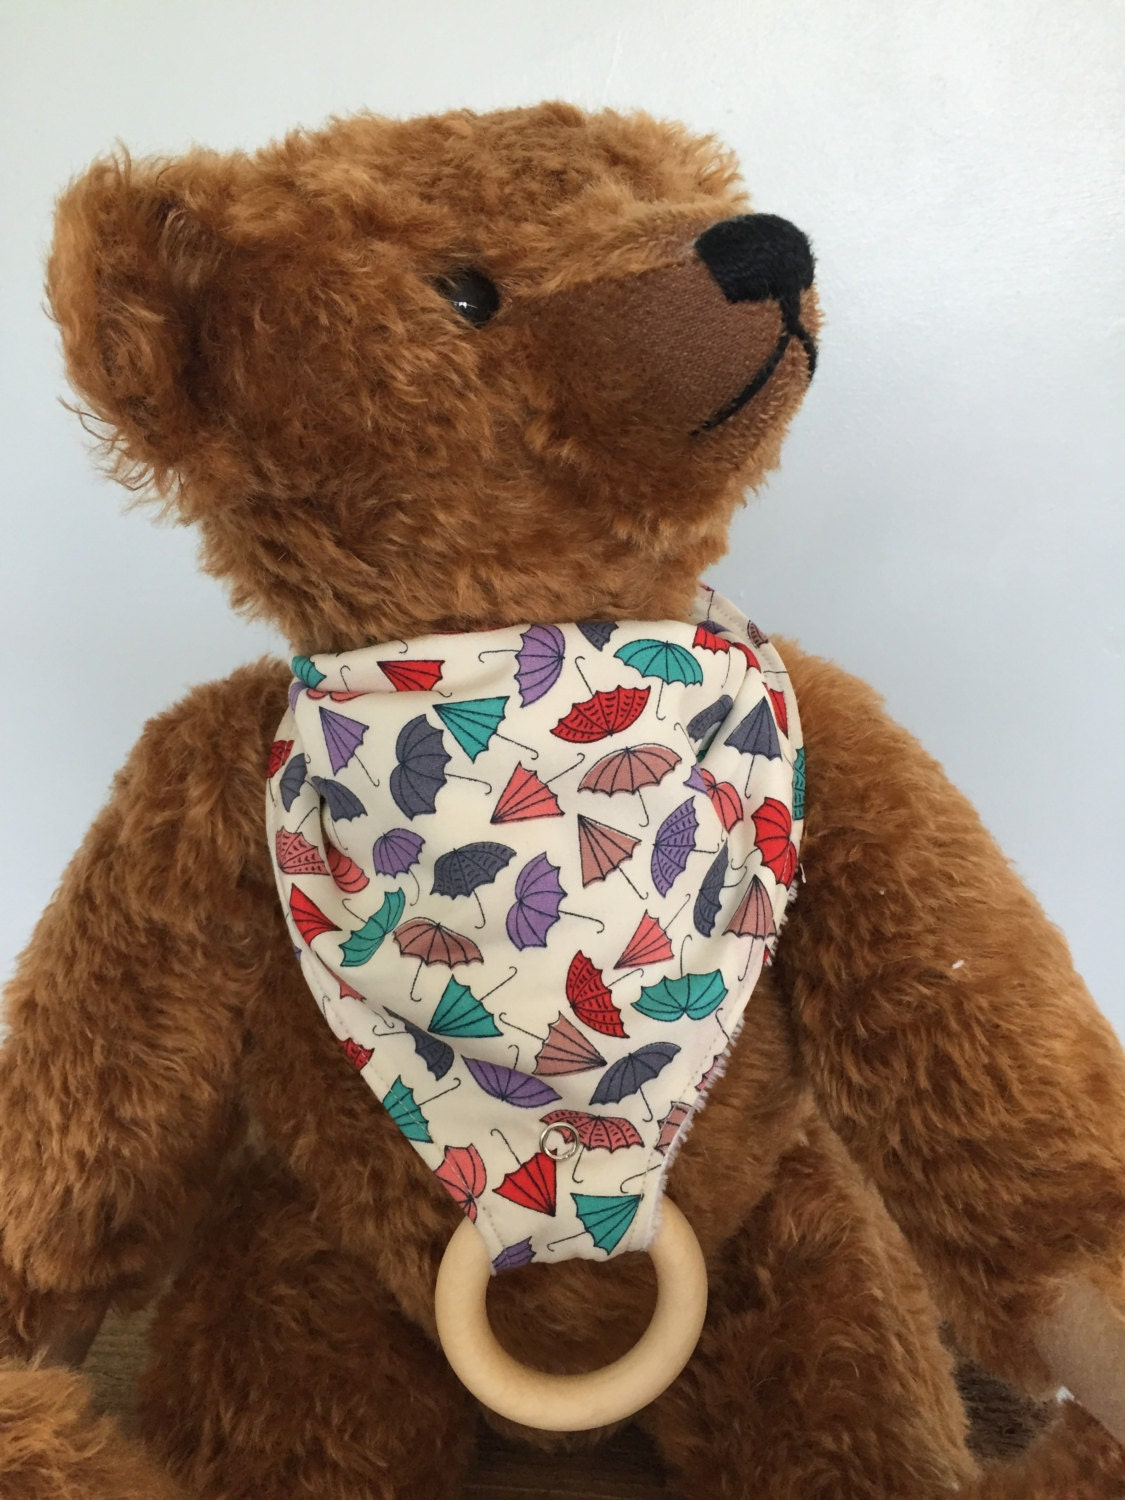 Handmade umbrella pattern dribble bib with attached wooden teething toy bandana bib new baby gift baby shower gift